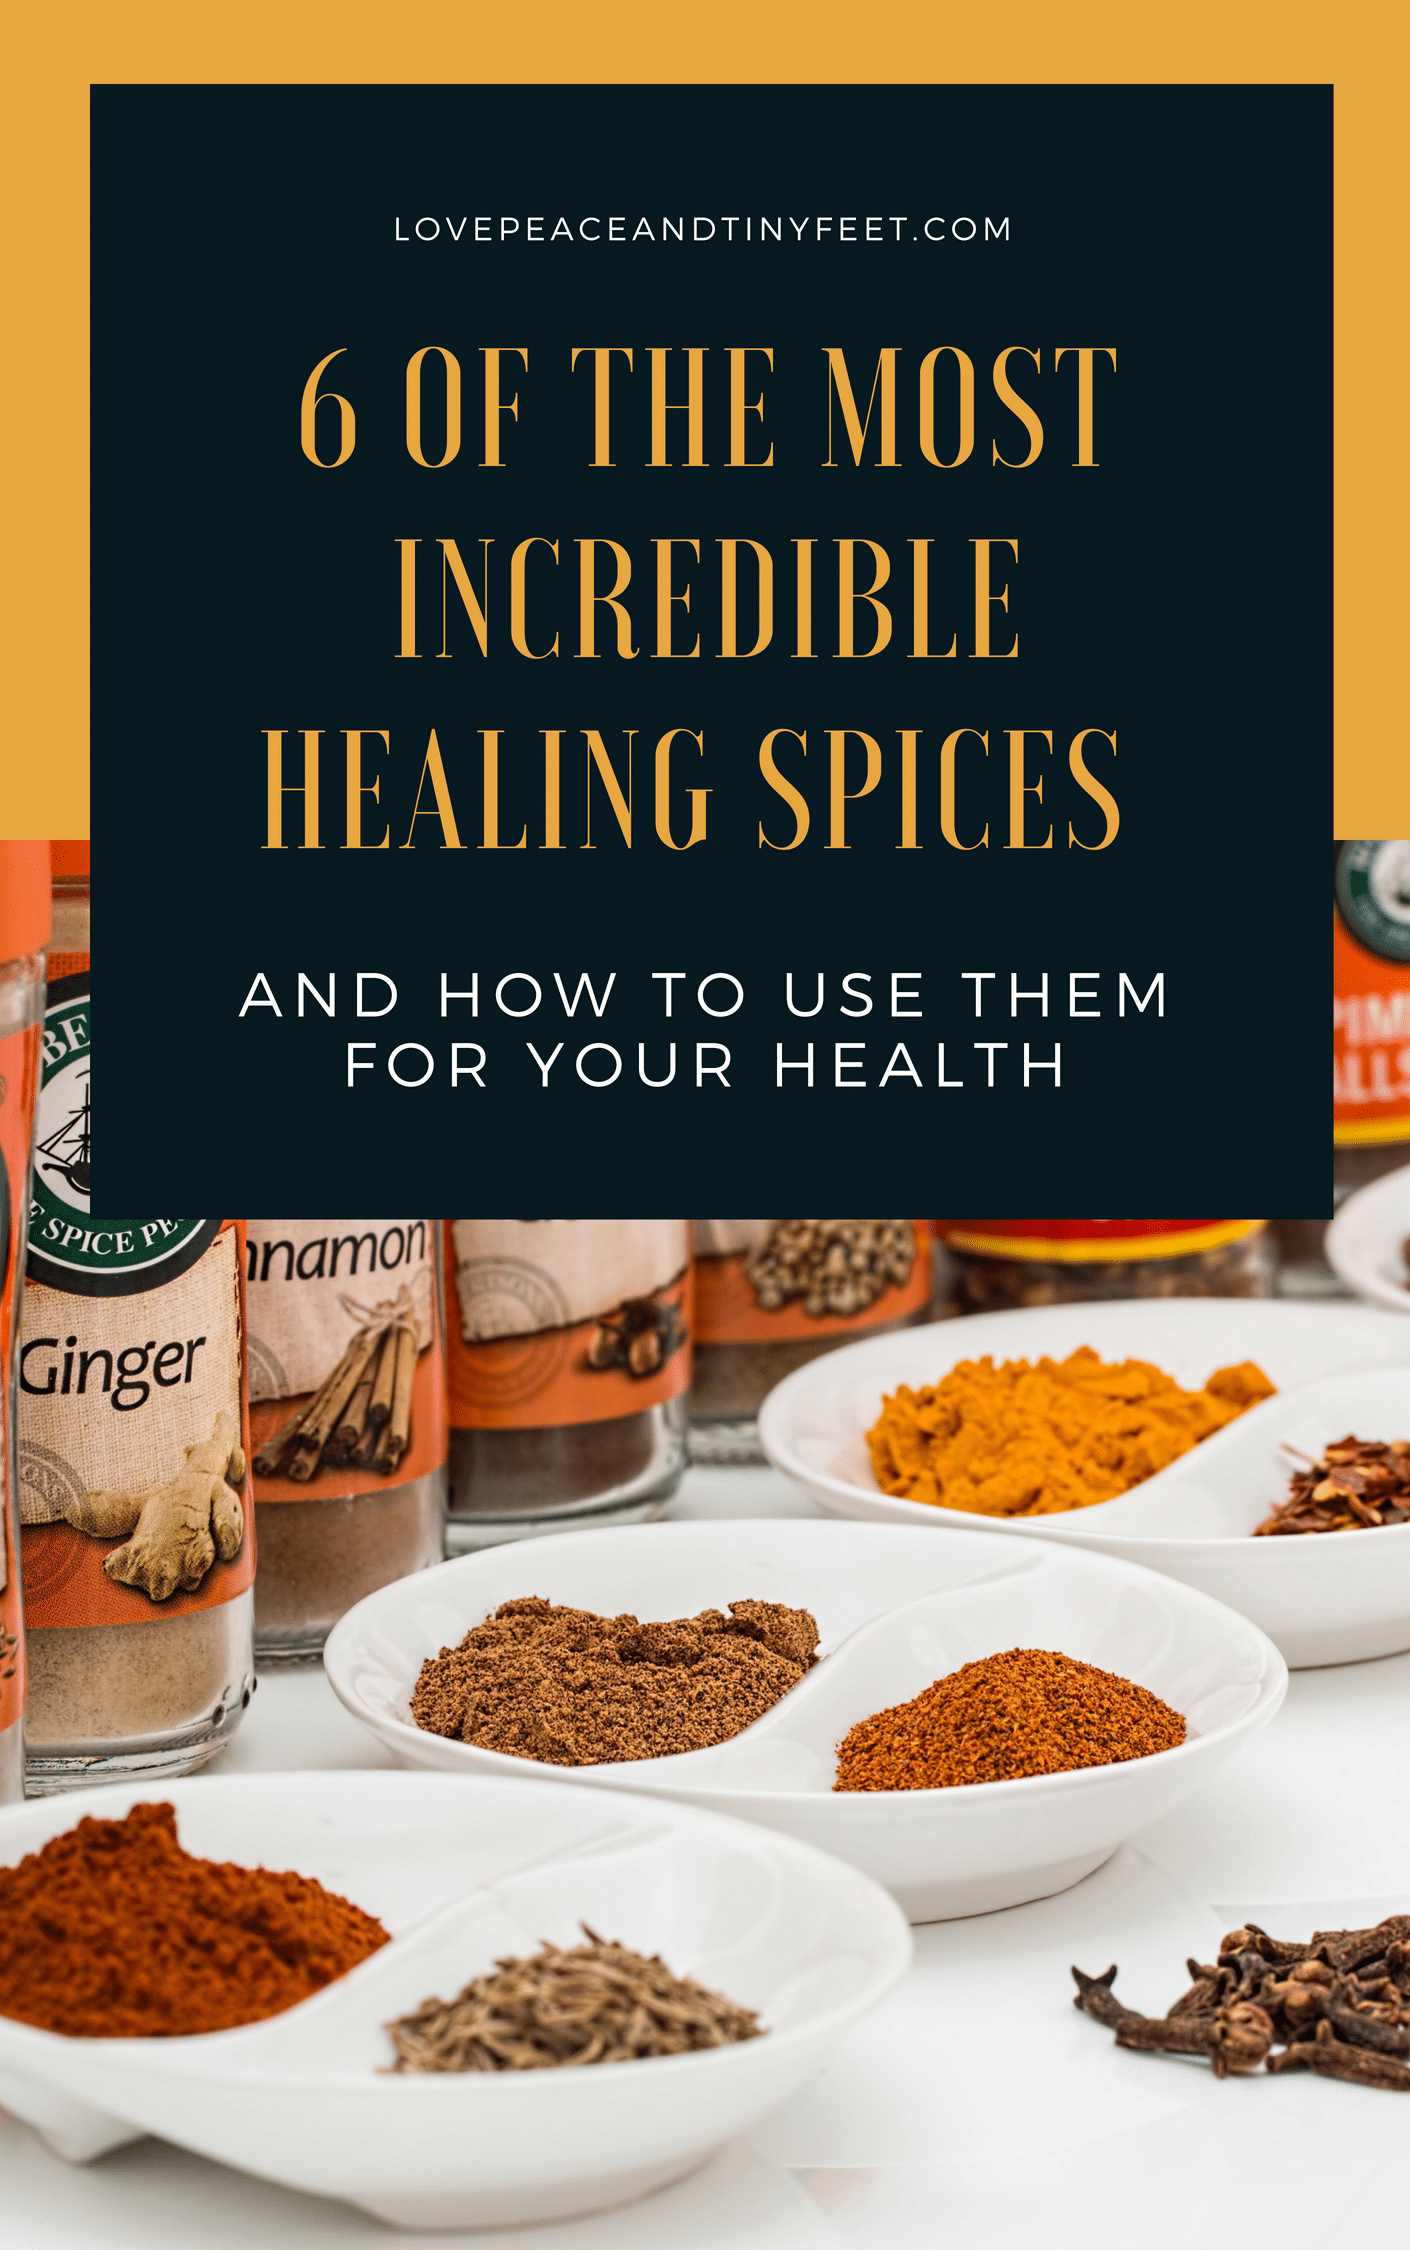 spices continue to be widely used within alternative medicine and homemade remedies and concoctions. Here are six of the most incredible healing spices and how to use them to improve your health